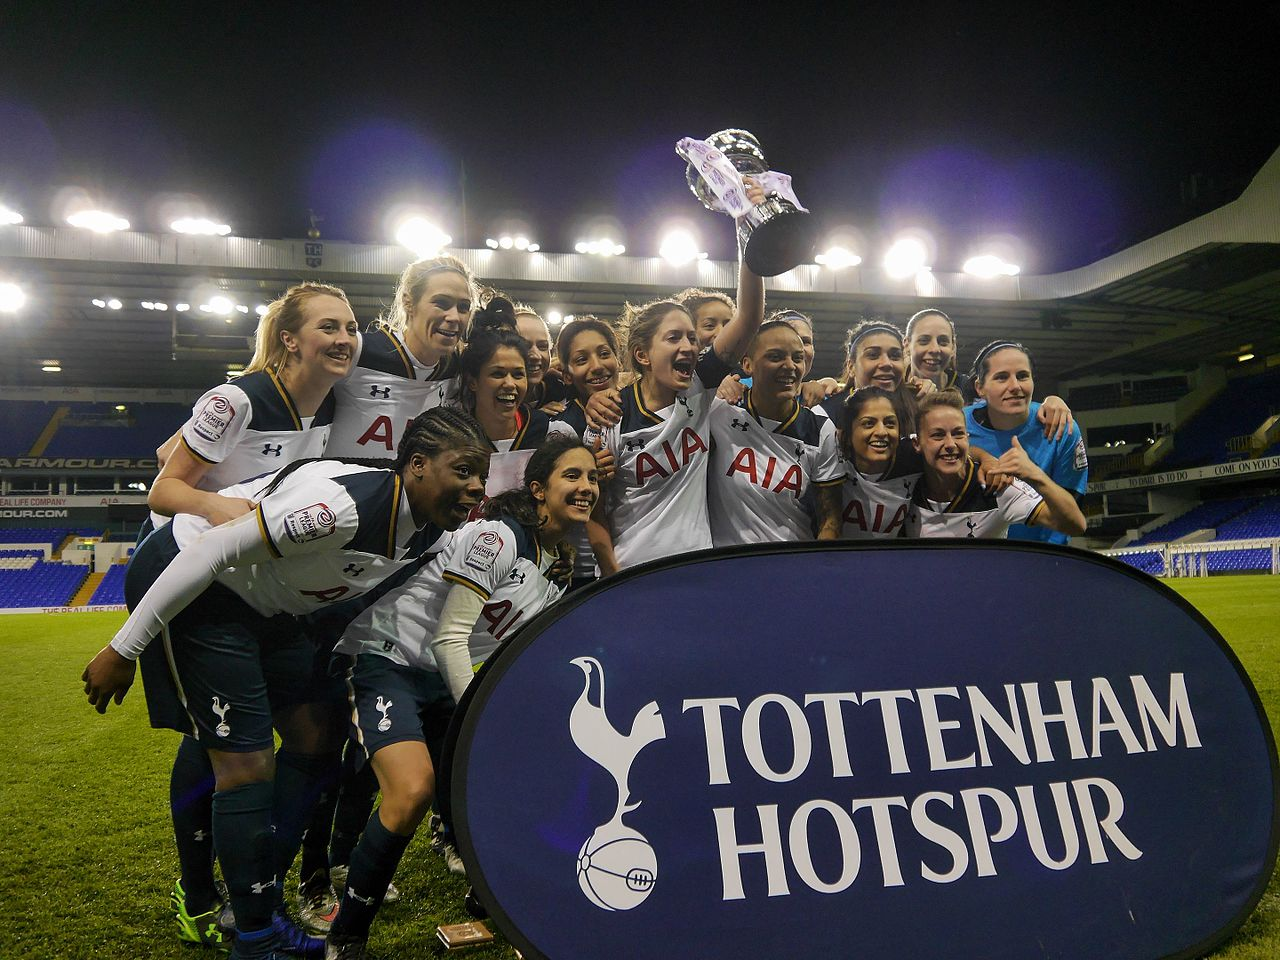 File:Tottenham Hotspur LFC v West Ham United LFC, 19 April ...